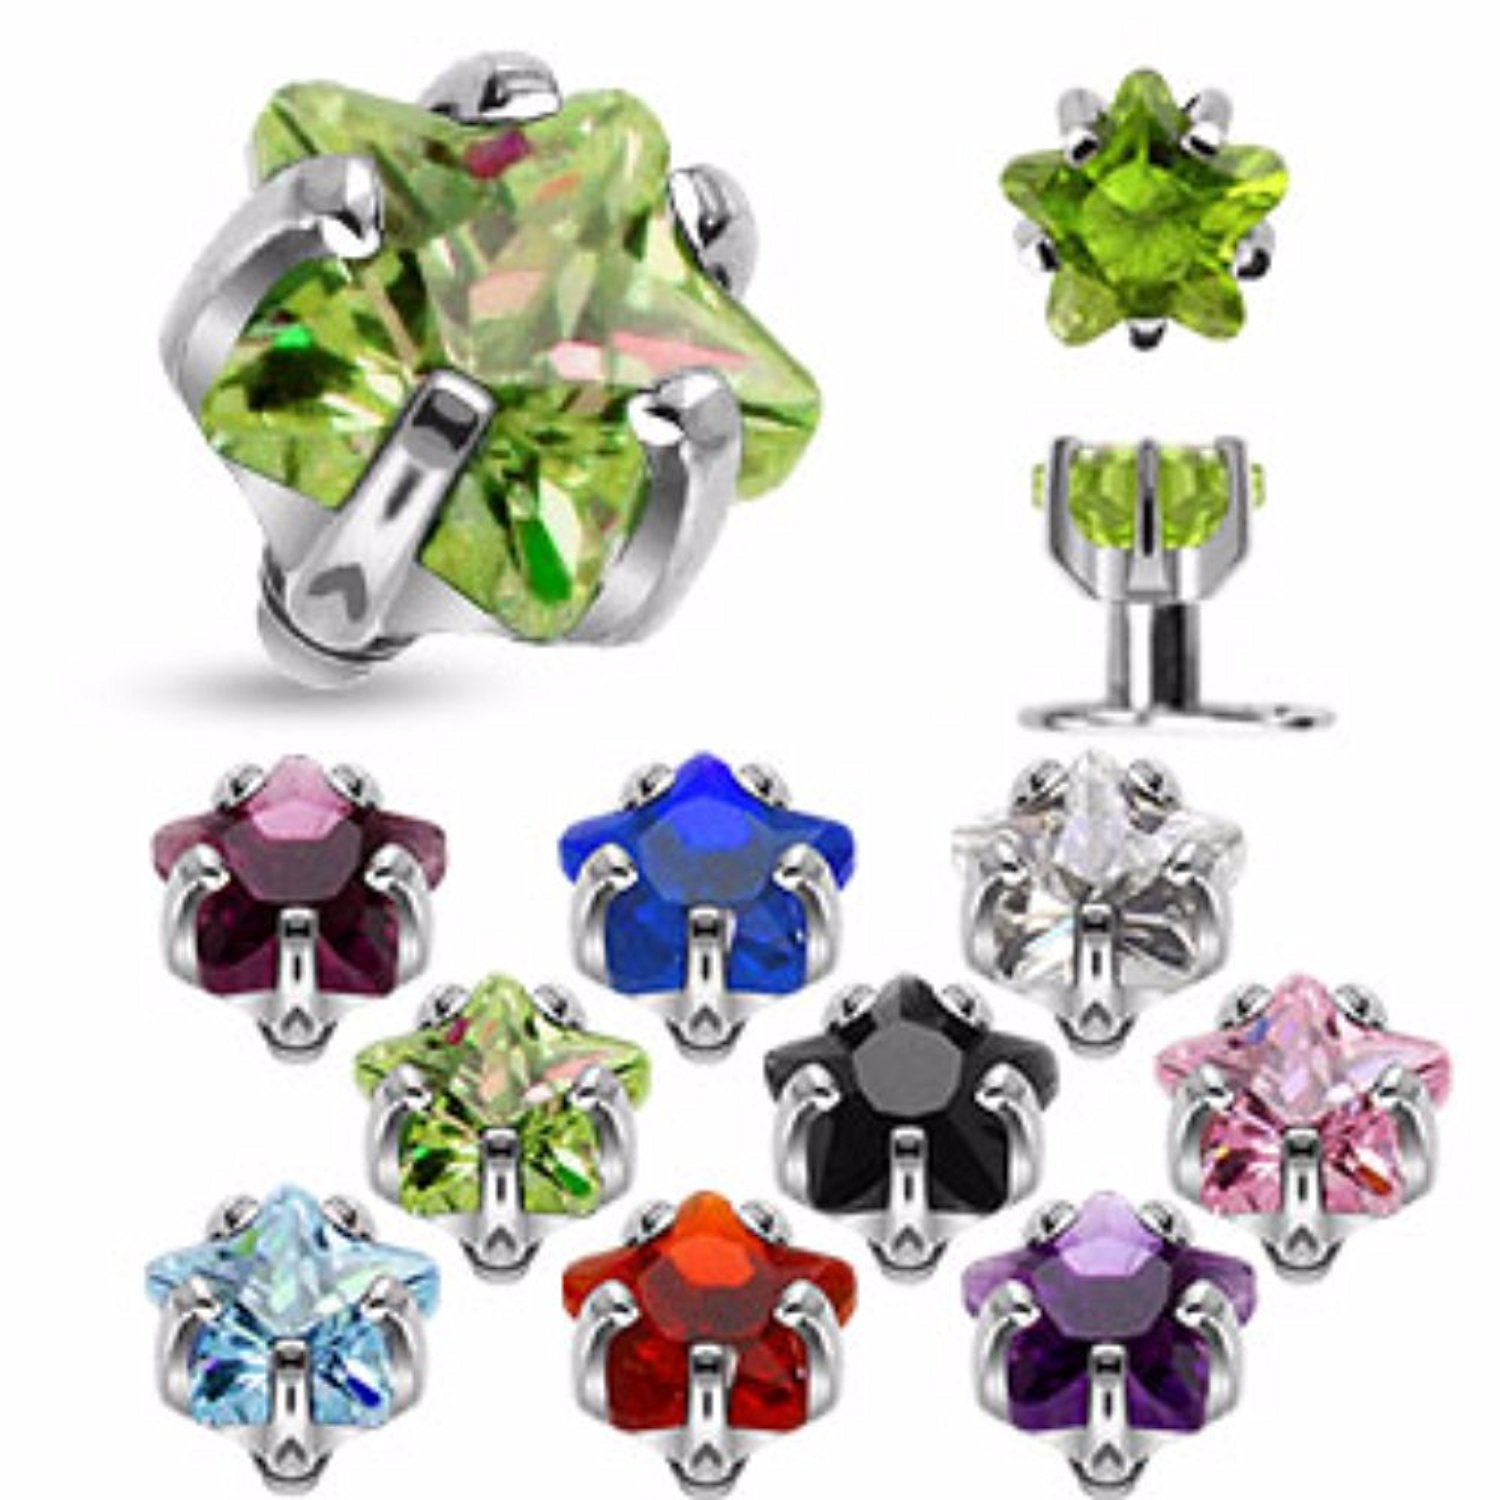 eg gifts Luxe Star Dermal Top Internally Threaded Prong Jewel in 14g 3mm (Clear)